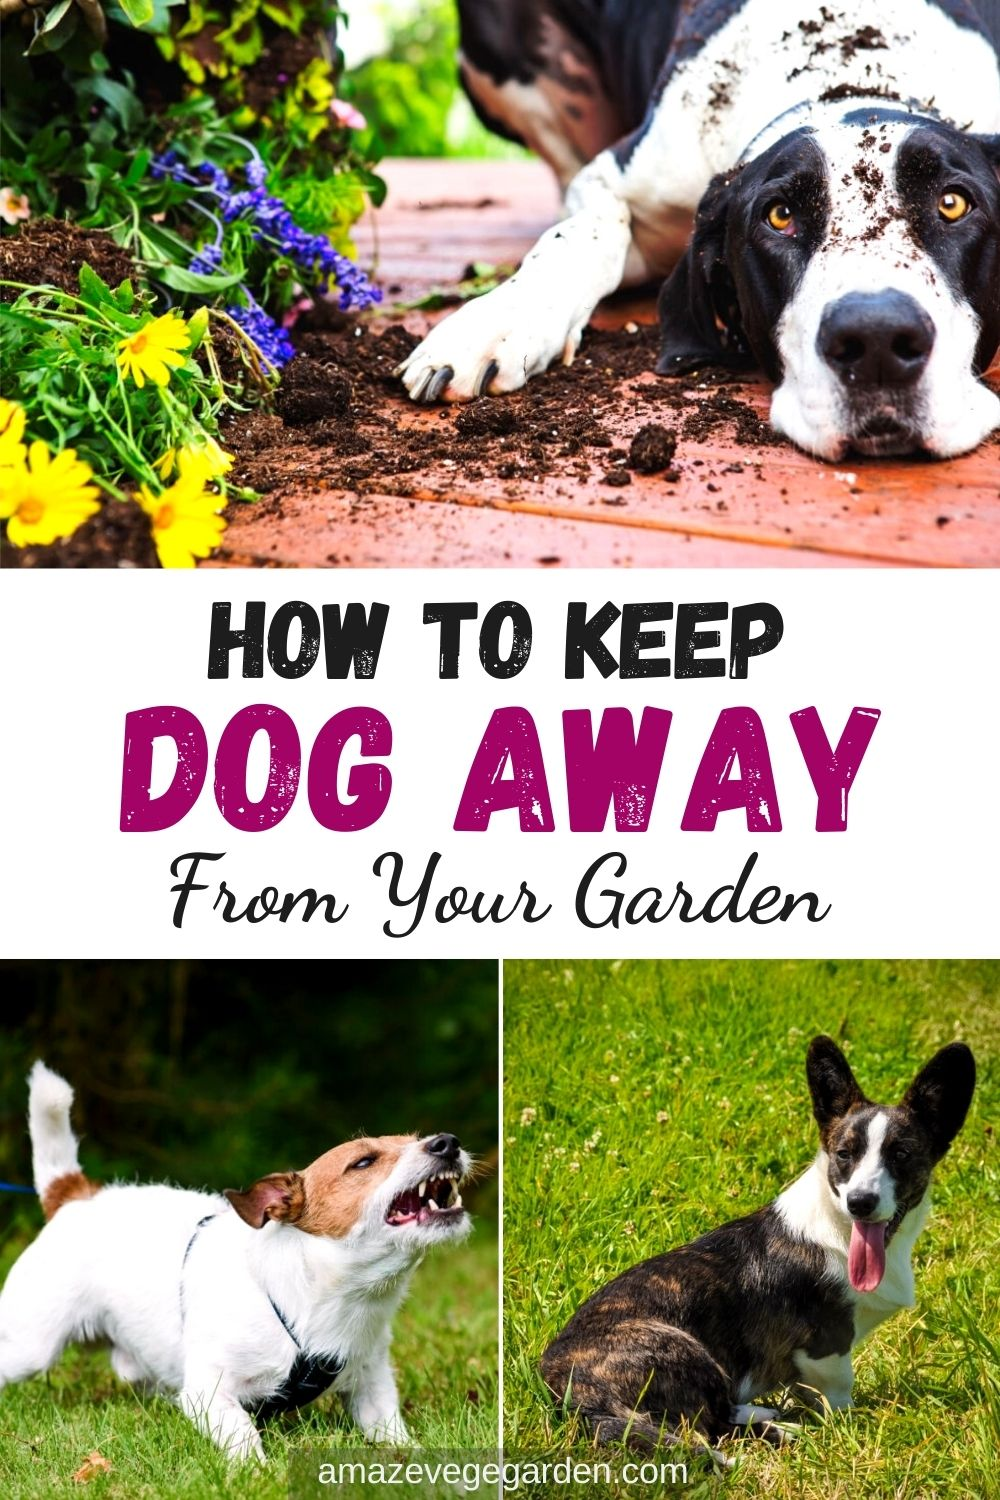 How To Keep Dog Away From Your Garden